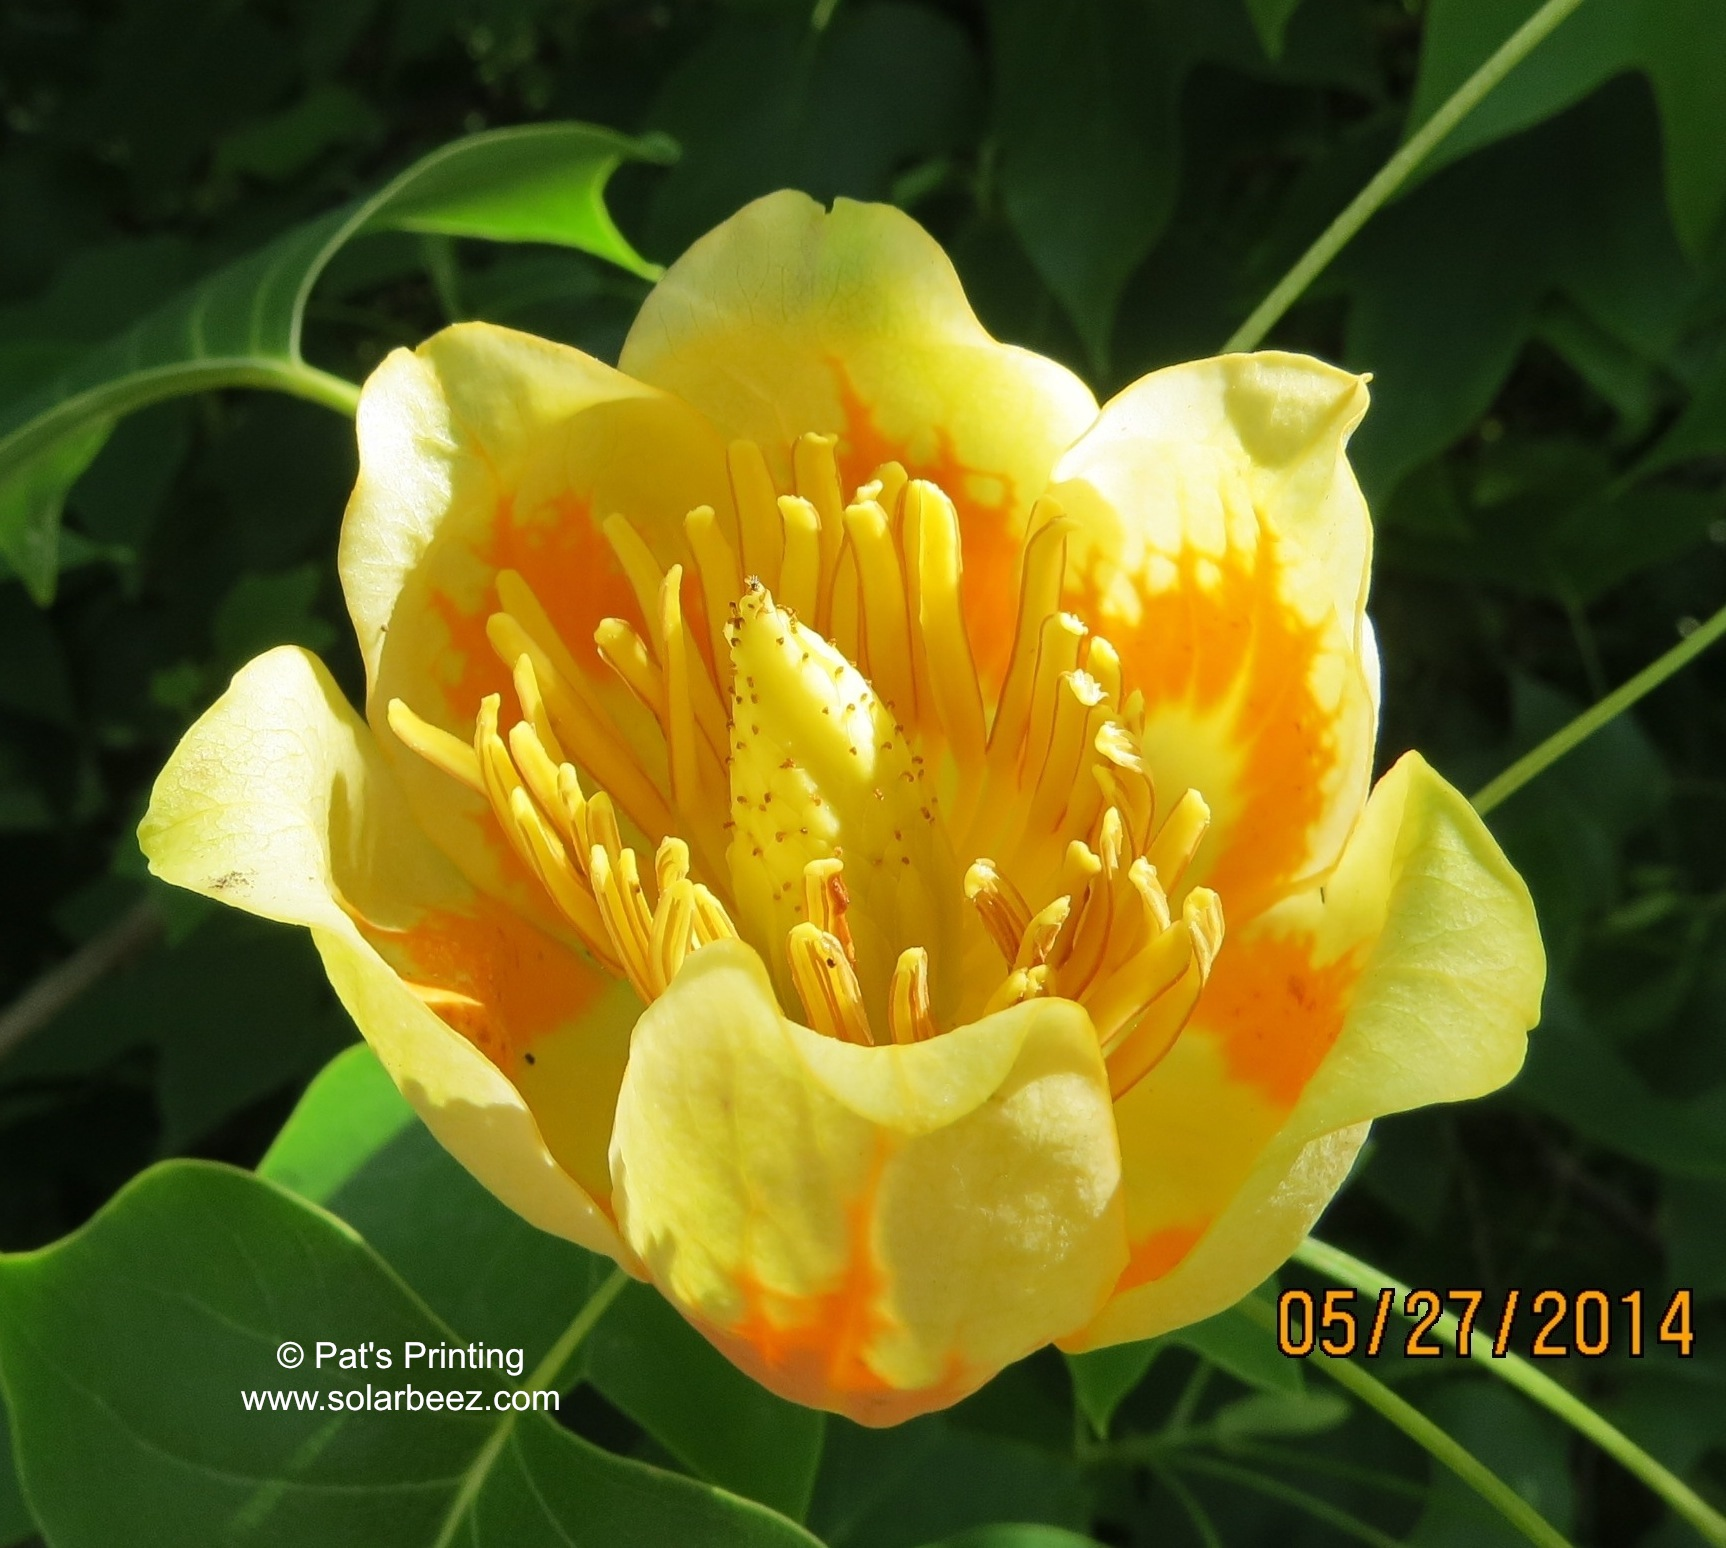 Tulip tree blossoms pictures Apple Tree Pictures: Photos, Images of Apple Trees